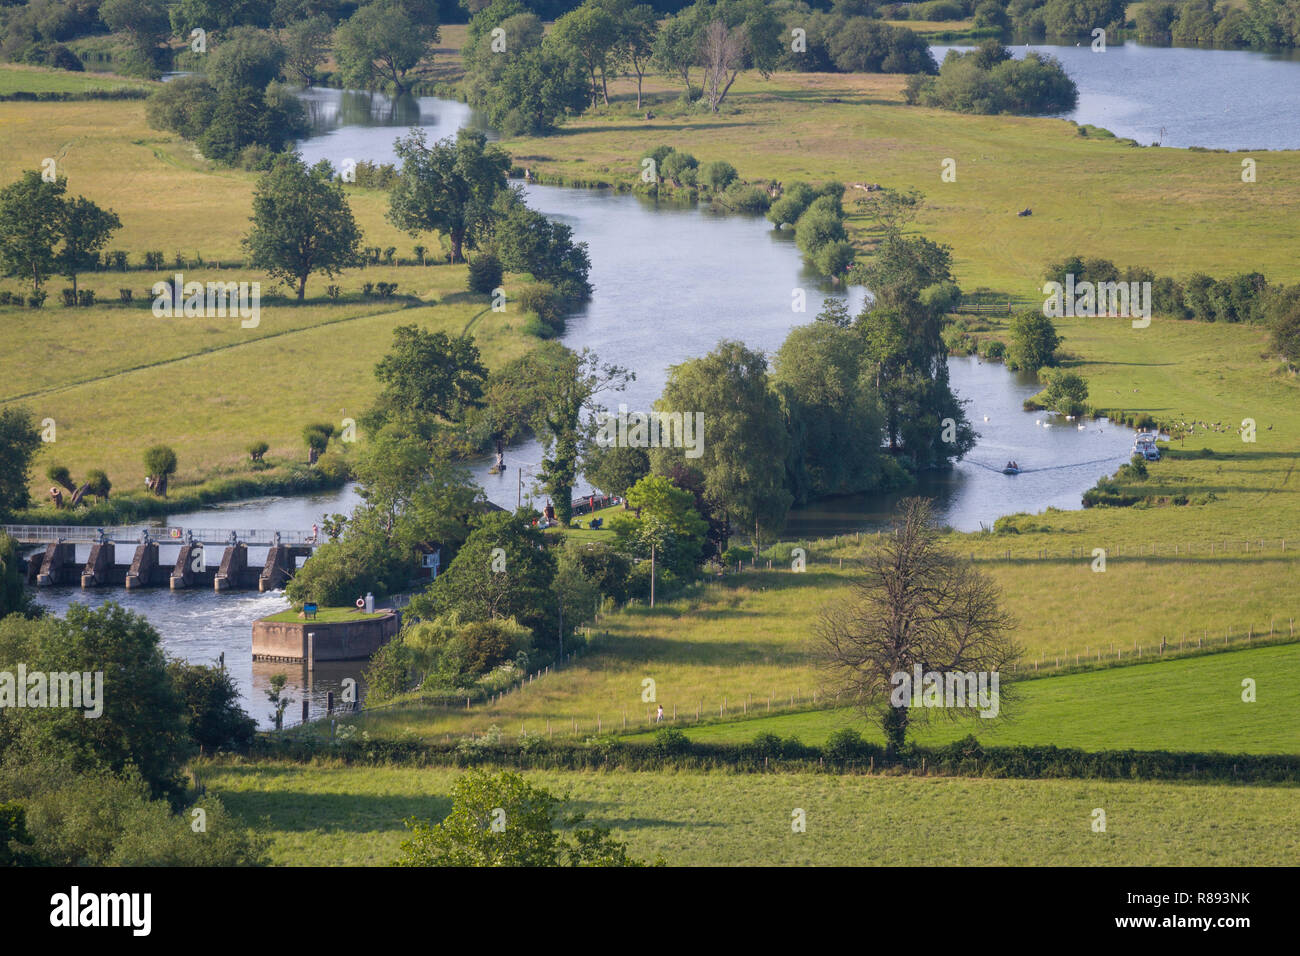 Looking down on Days Lock on the River Thames near Dorchester-on-Thames, viewed from Round Hill, Wittenham Clumps, Oxfordshire - Stock Image